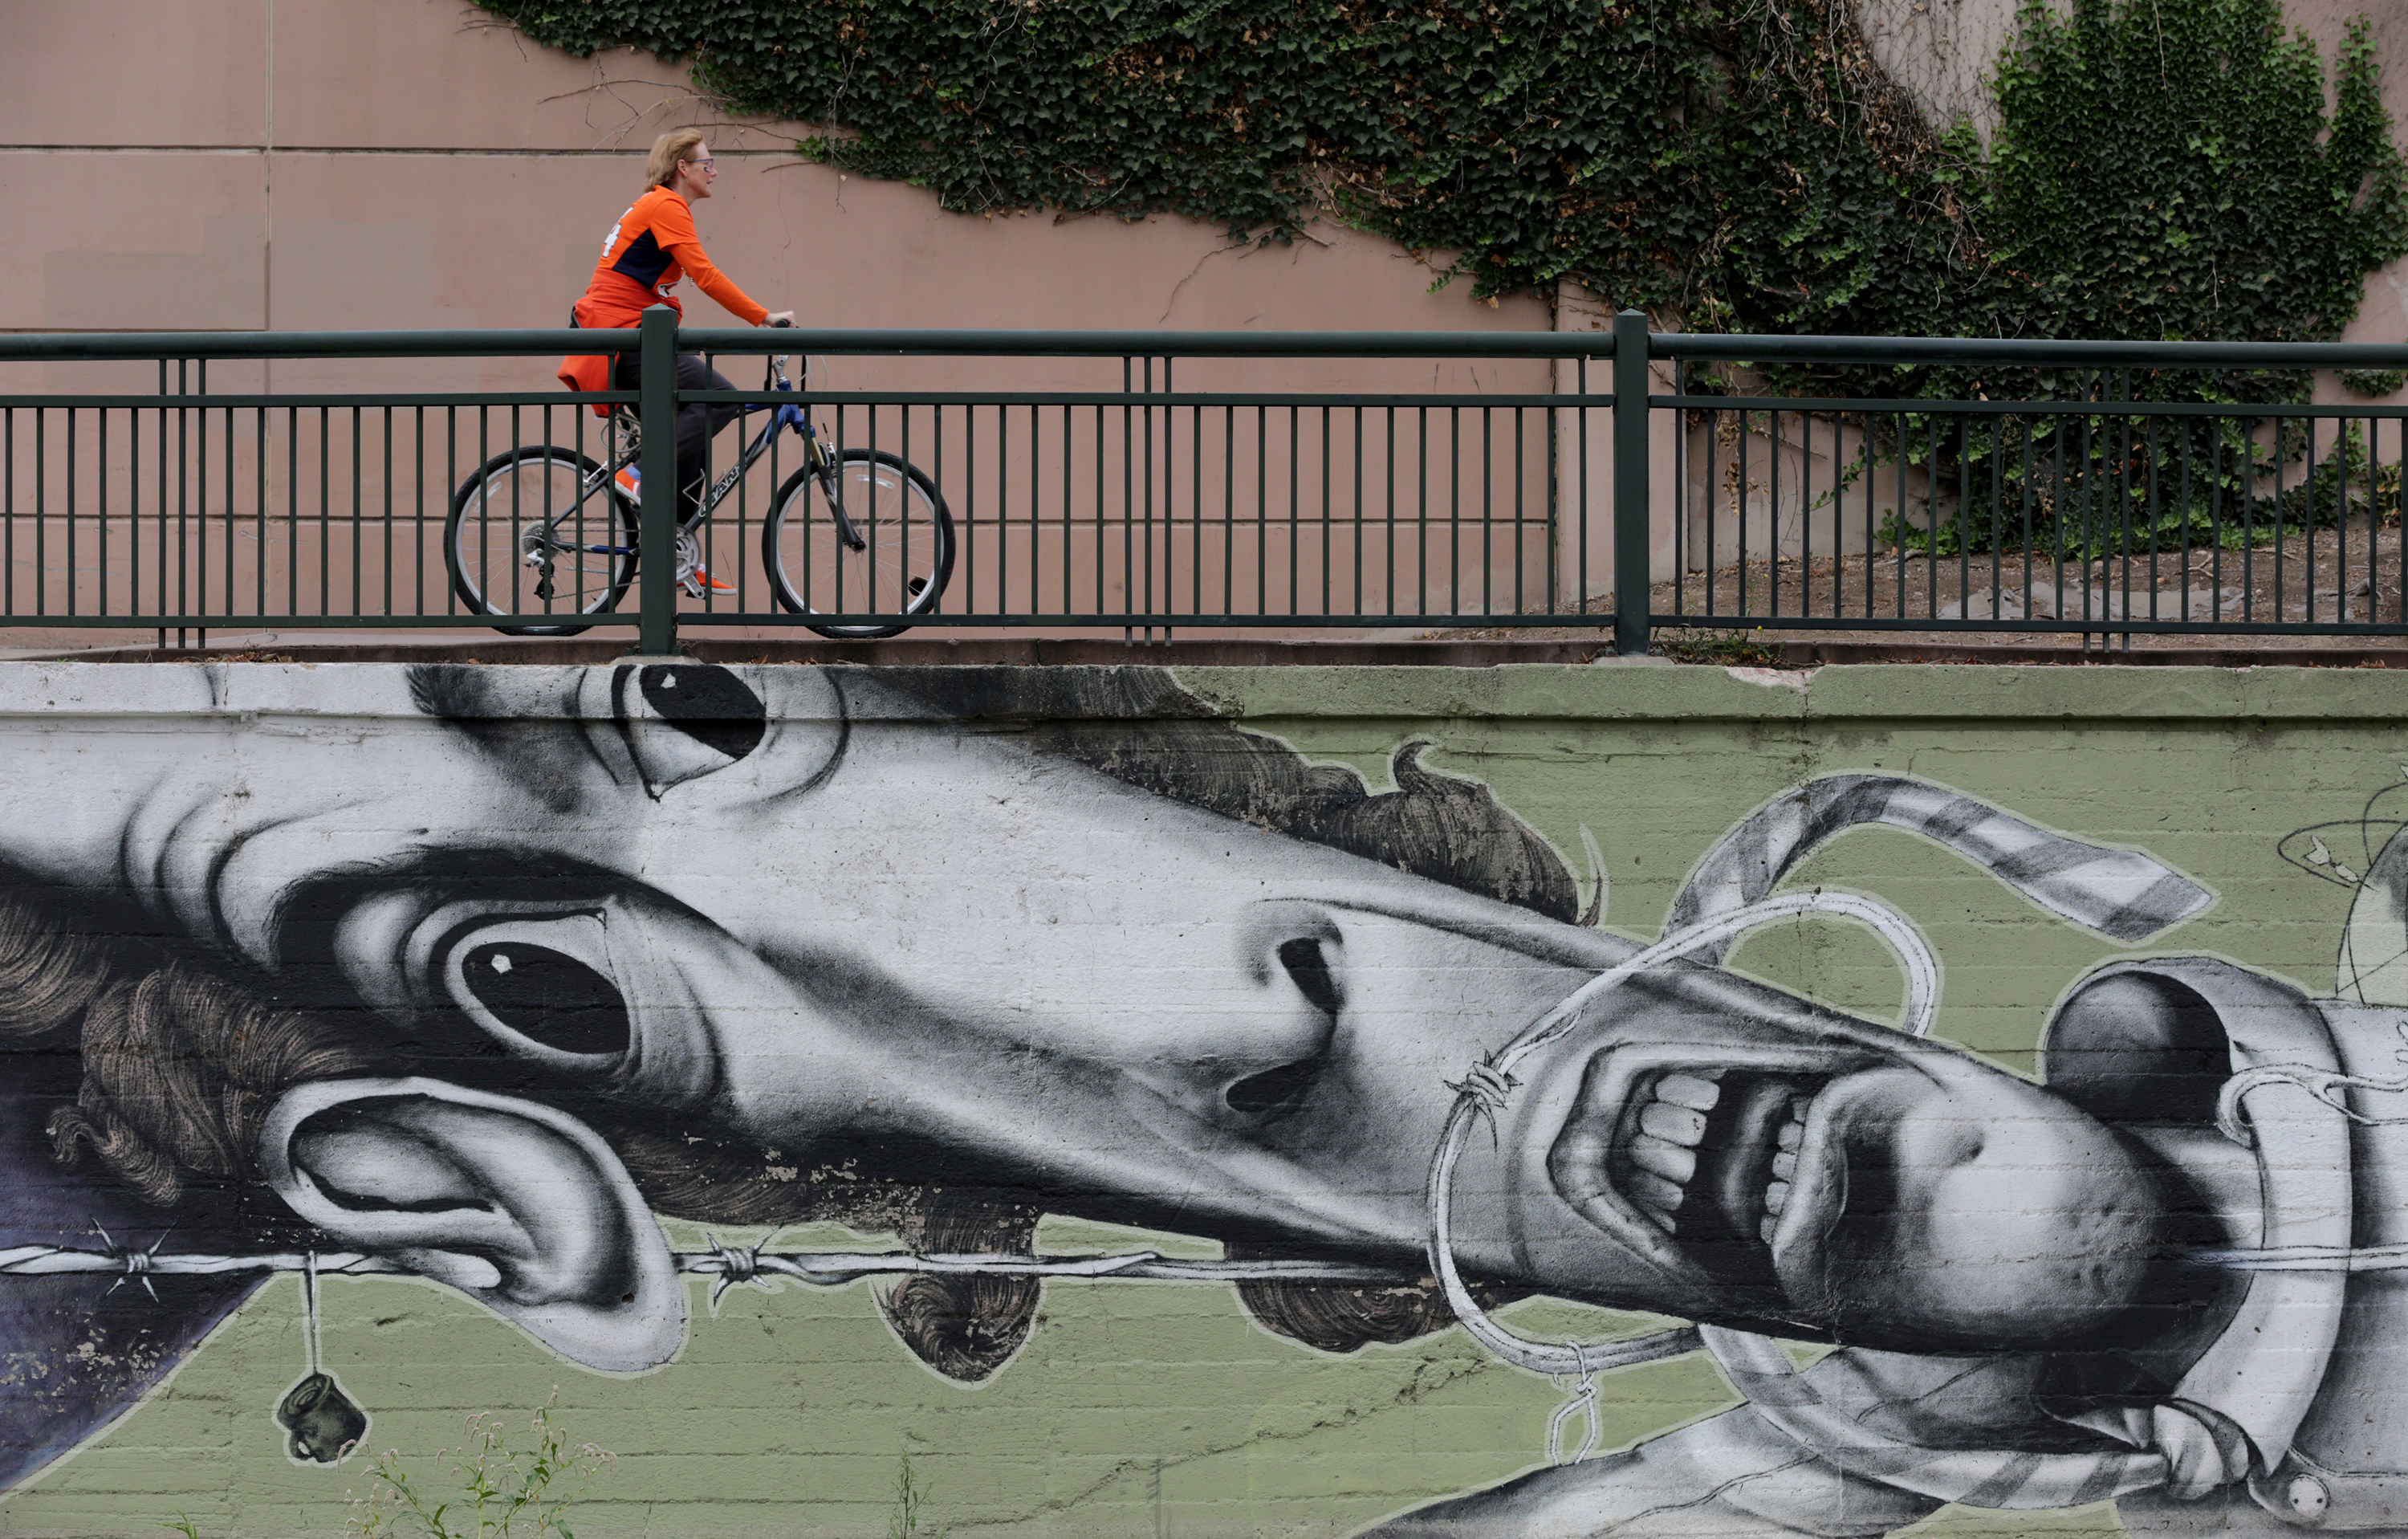 <p>A cyclist rides on the Cherry Creek bike path above a graffiti mural commissioned by the city of Denver near Confluence Park on Sunday, Oct. 4, 2015.</p>